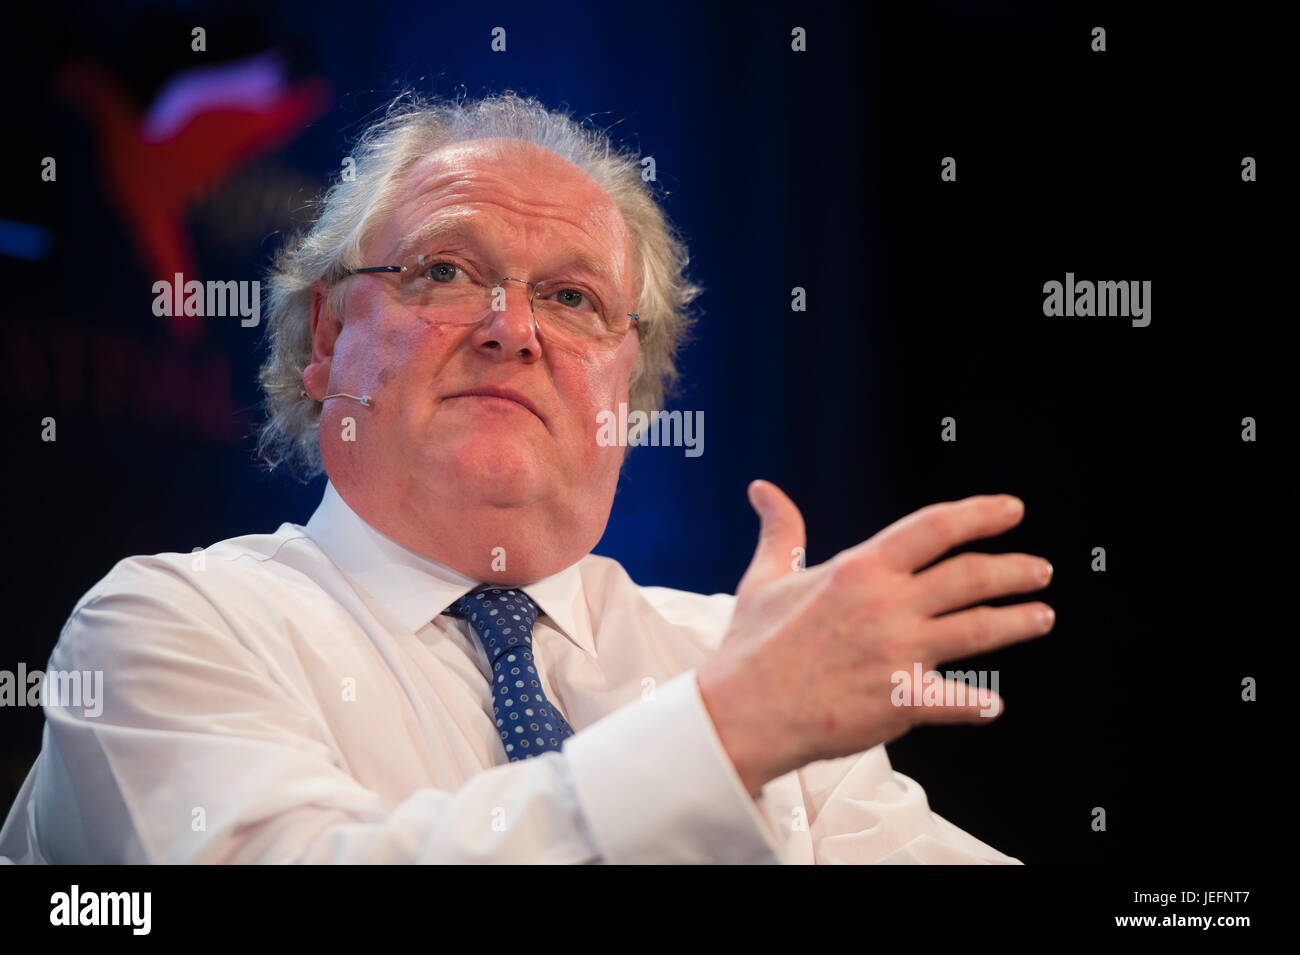 Entrepreneur DIGBY JONES  at the 2017 Hay Festival of Literature and the Arts, Hay on Wye, Wales UK - Stock Image